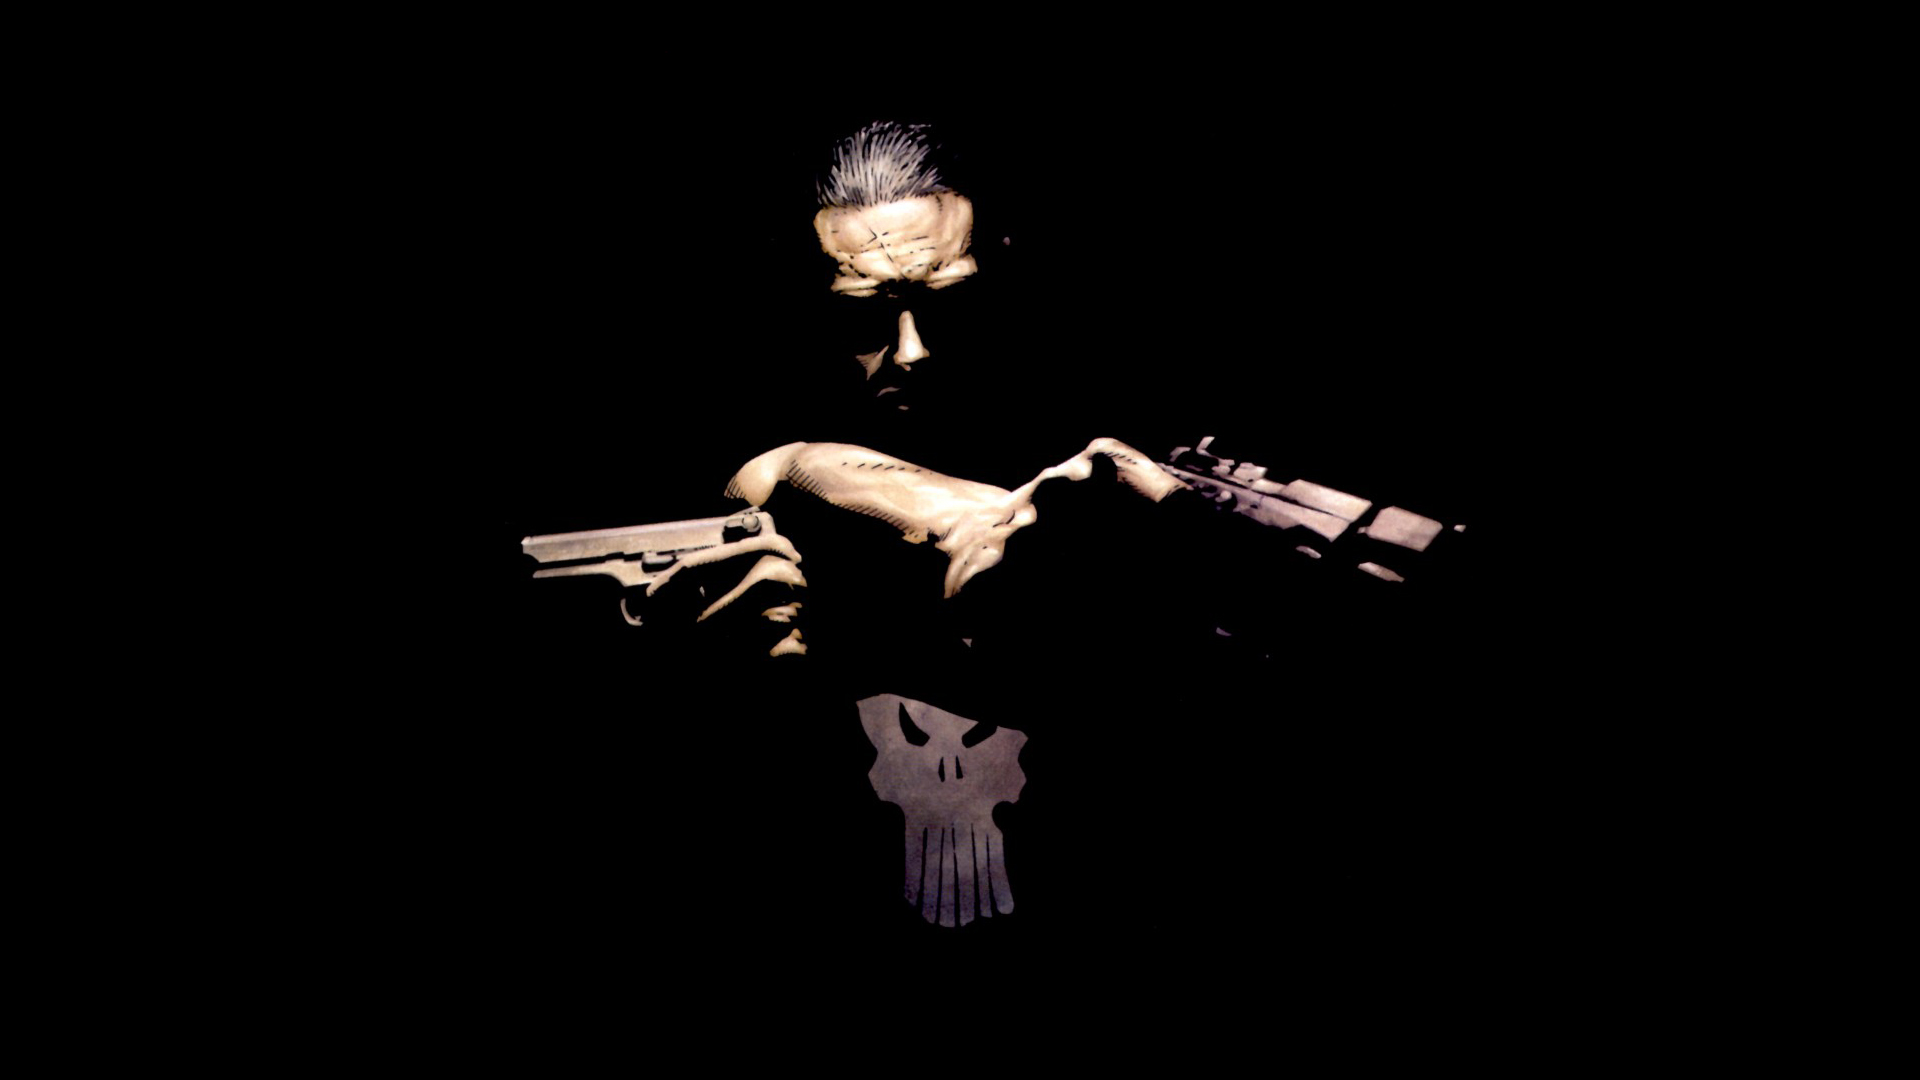 Punisher Wallpaper Related Keywords & Suggestions - Punisher Wallpaper ...